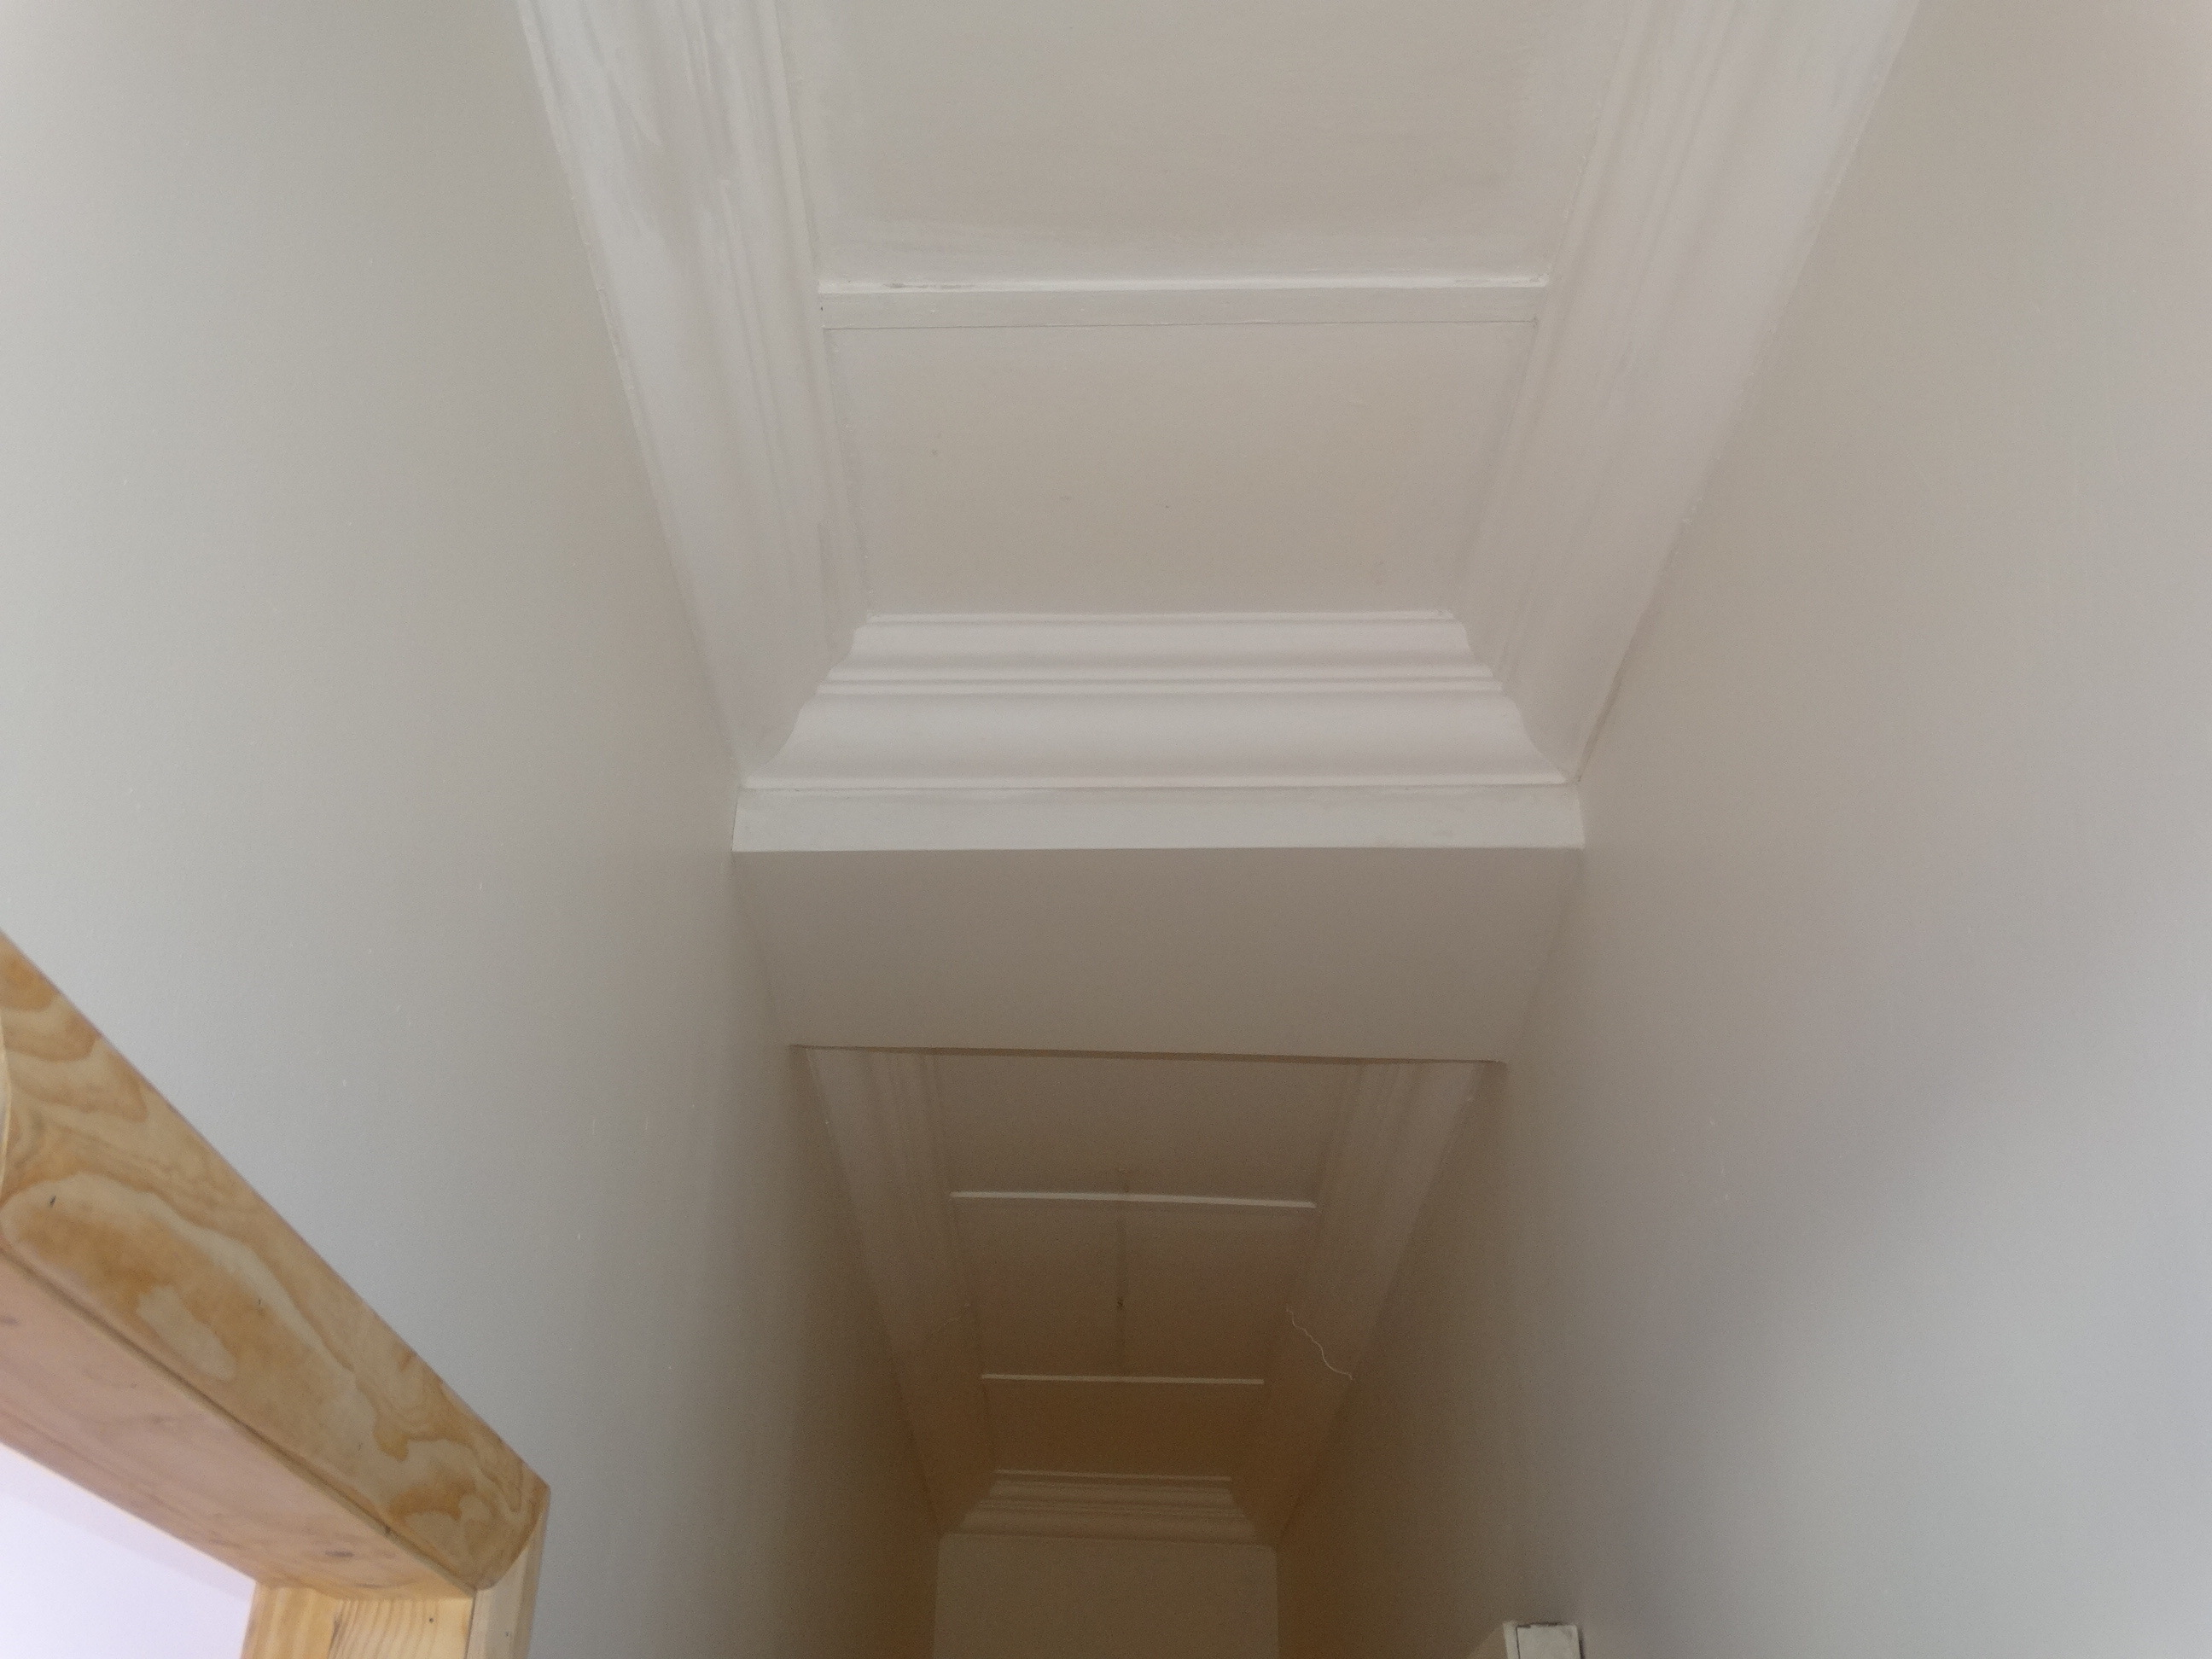 Ceiling and polystyrene cornices